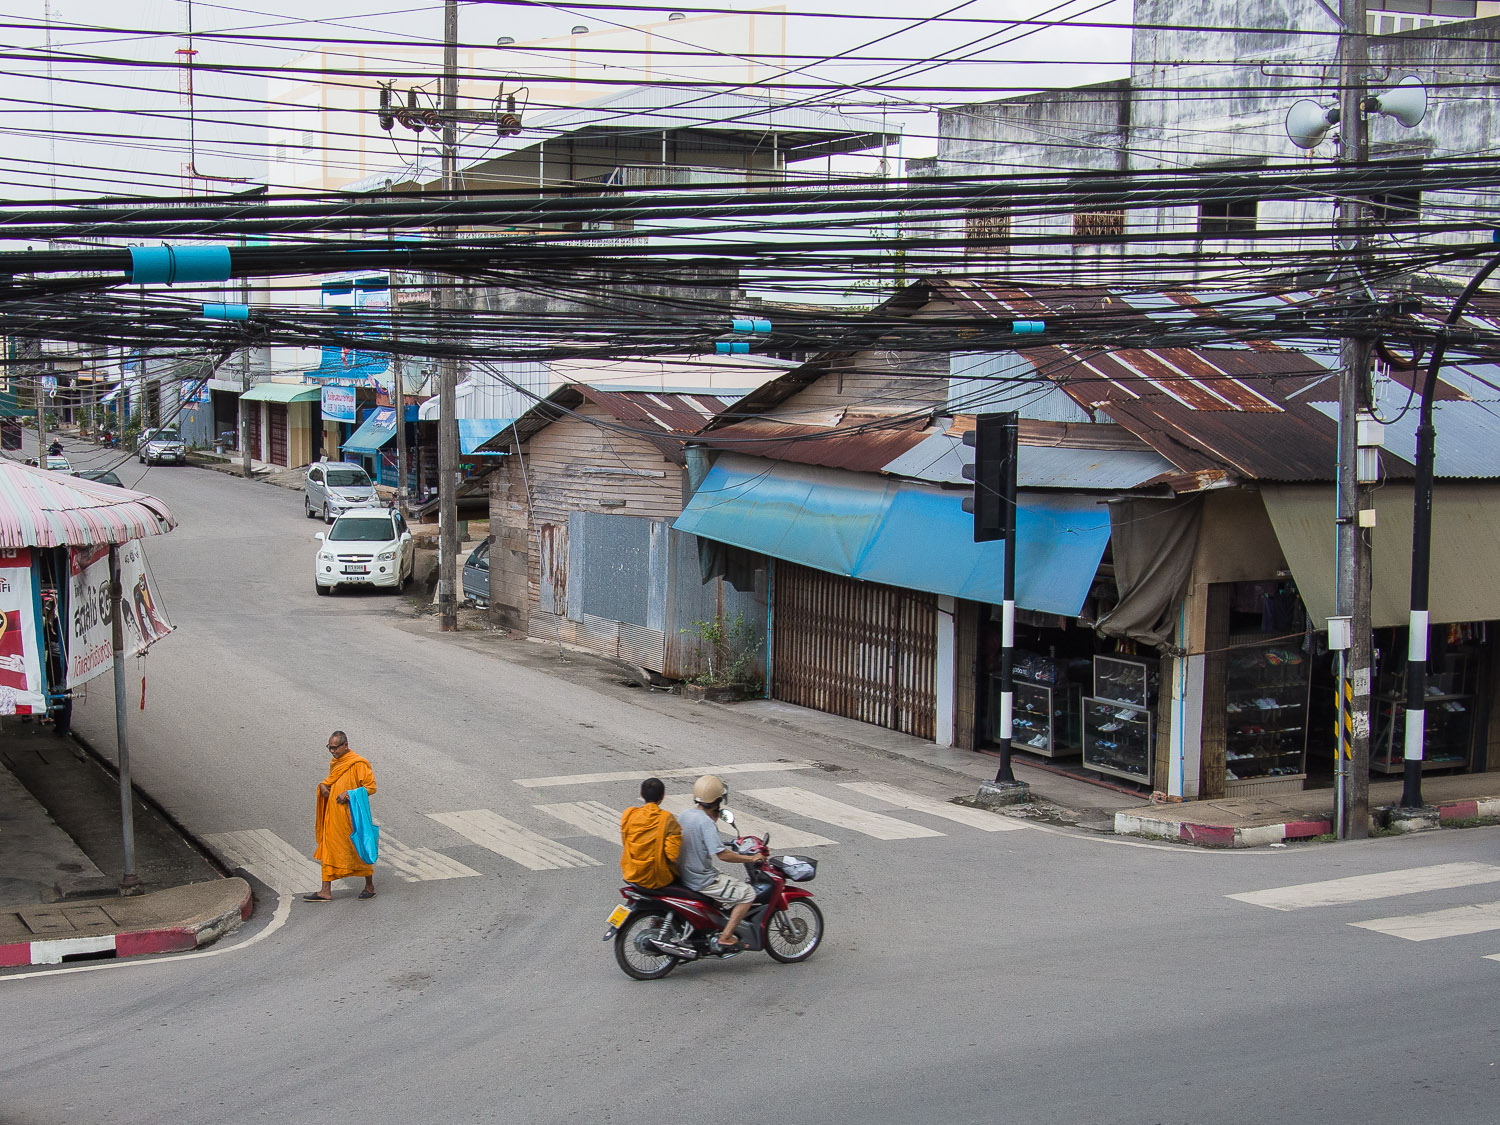 Satun town seen from a bank mall, including a monk from the monastery